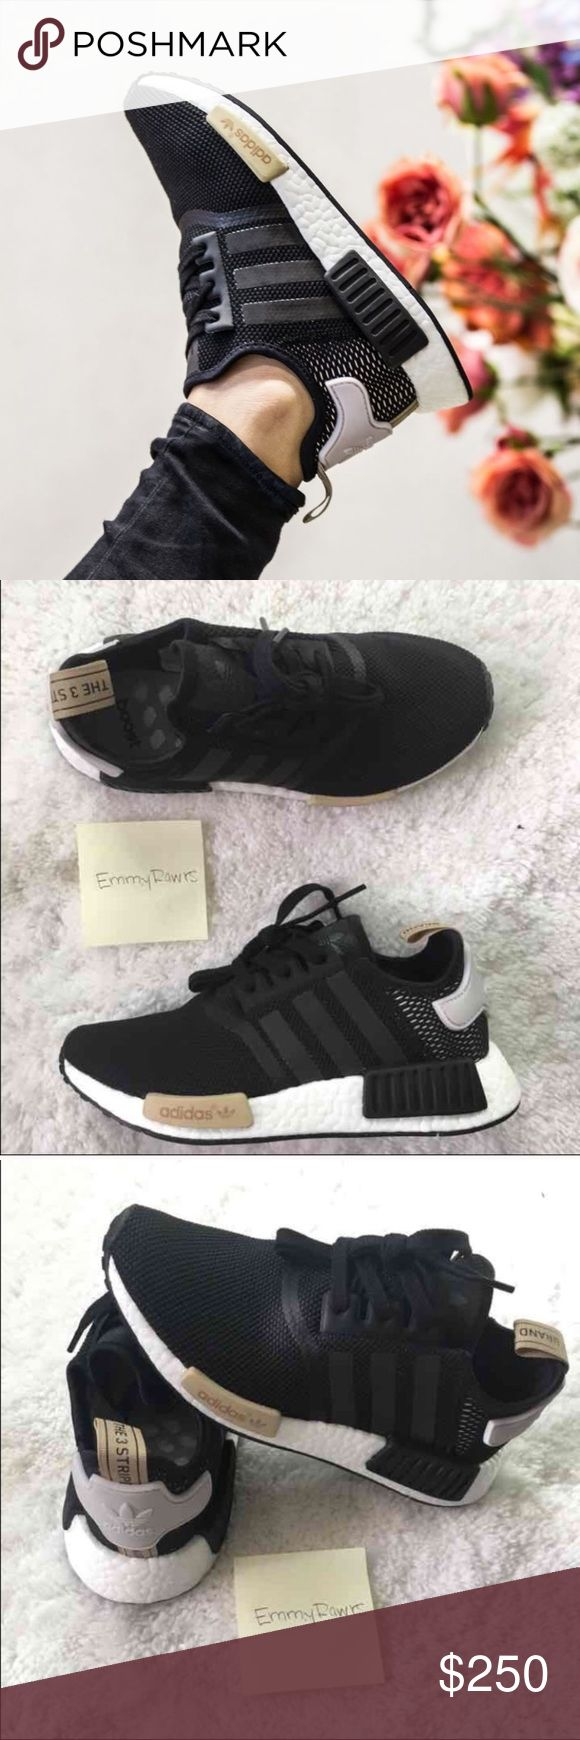 New in Box • LAST Adidas NMD Core Black Size 7.5 NO TRADES•••• New Women Adidas NMD. Featherweight sneakers with the adidas boost cushioning. Upper is made of suede and neoprene which makes these. Also have EVA foam plugs which provides more comfort for the underfoot. Have the classic 3 stripes.  Colorway : Core Black   #adidas #NMD #boost #women #yeezy White talc cream salmon pink Adidas Shoes Sneakers